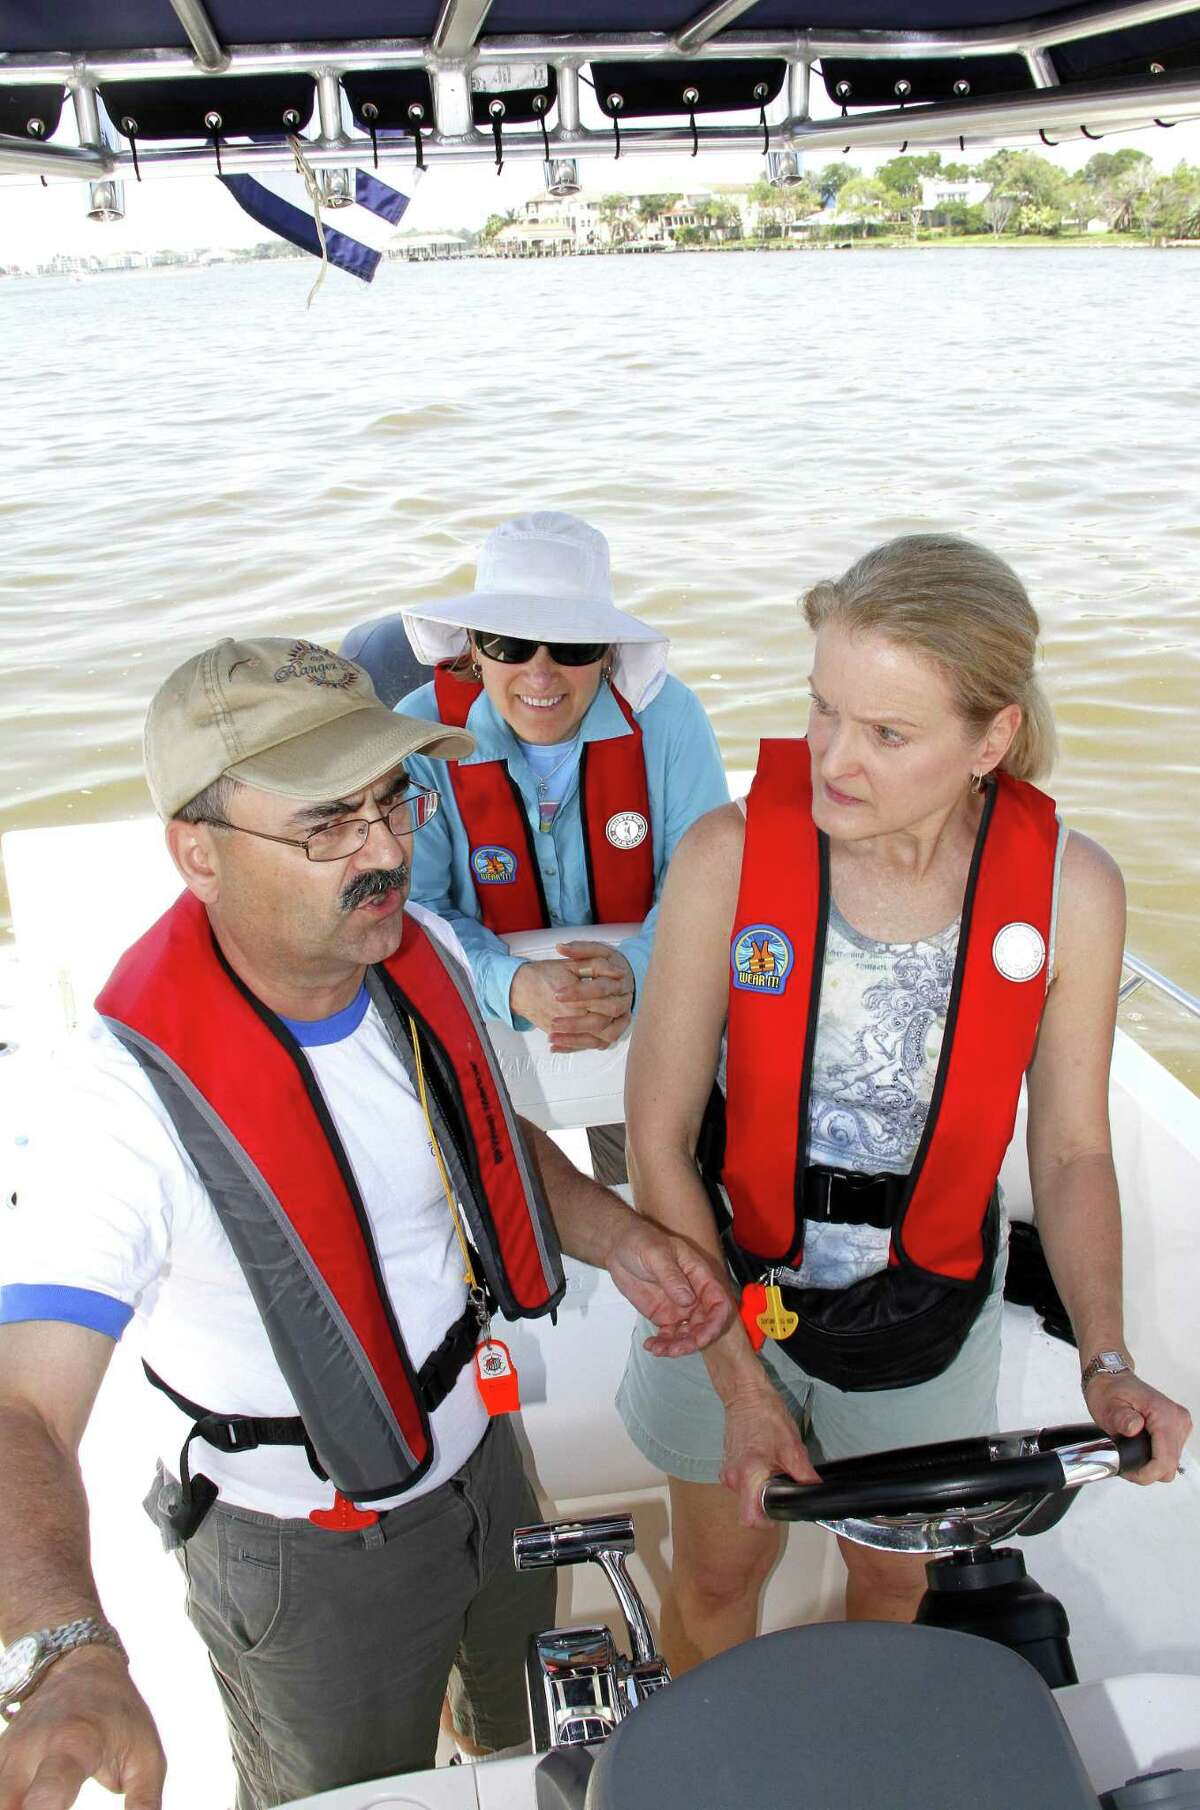 Wearing a personal flotation device - life jacket - while a vessel is underway is one of the most effective safety measures boat operators or passengers can take. But a national study indicates fewer than 10 percent of adults in open powerboats wear PFDs.